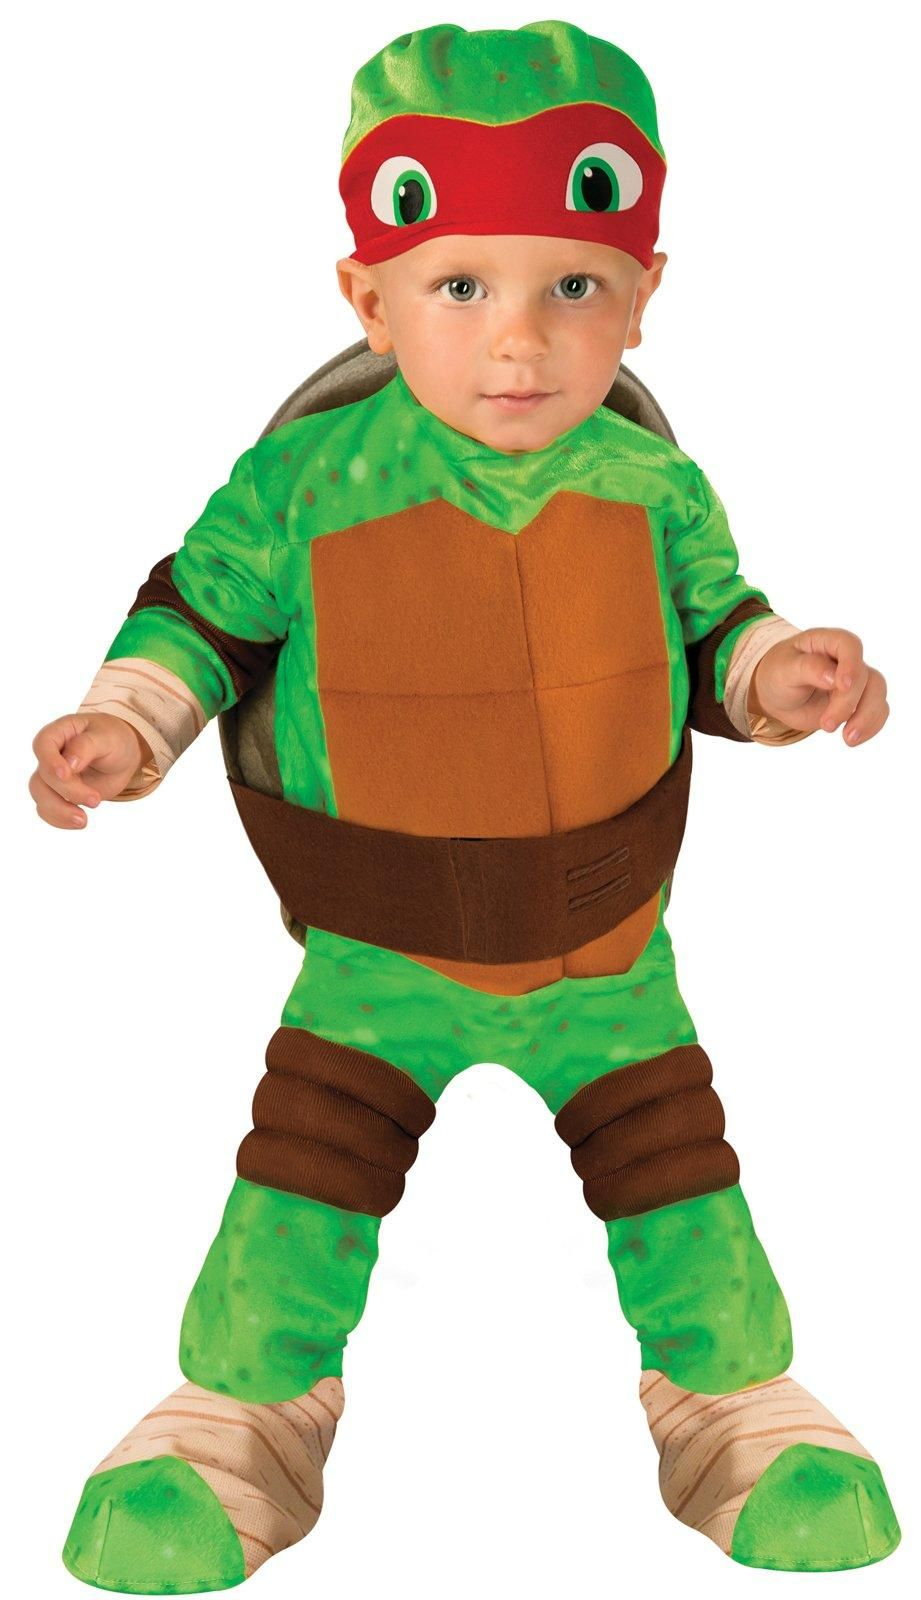 Teenage Mutant Ninja Turtle - Raphael Toddler Costume from BirthdayExpress.com  sc 1 st  Pinterest & Teenage Mutant Ninja Turtle - Raphael Toddler Costume from ...